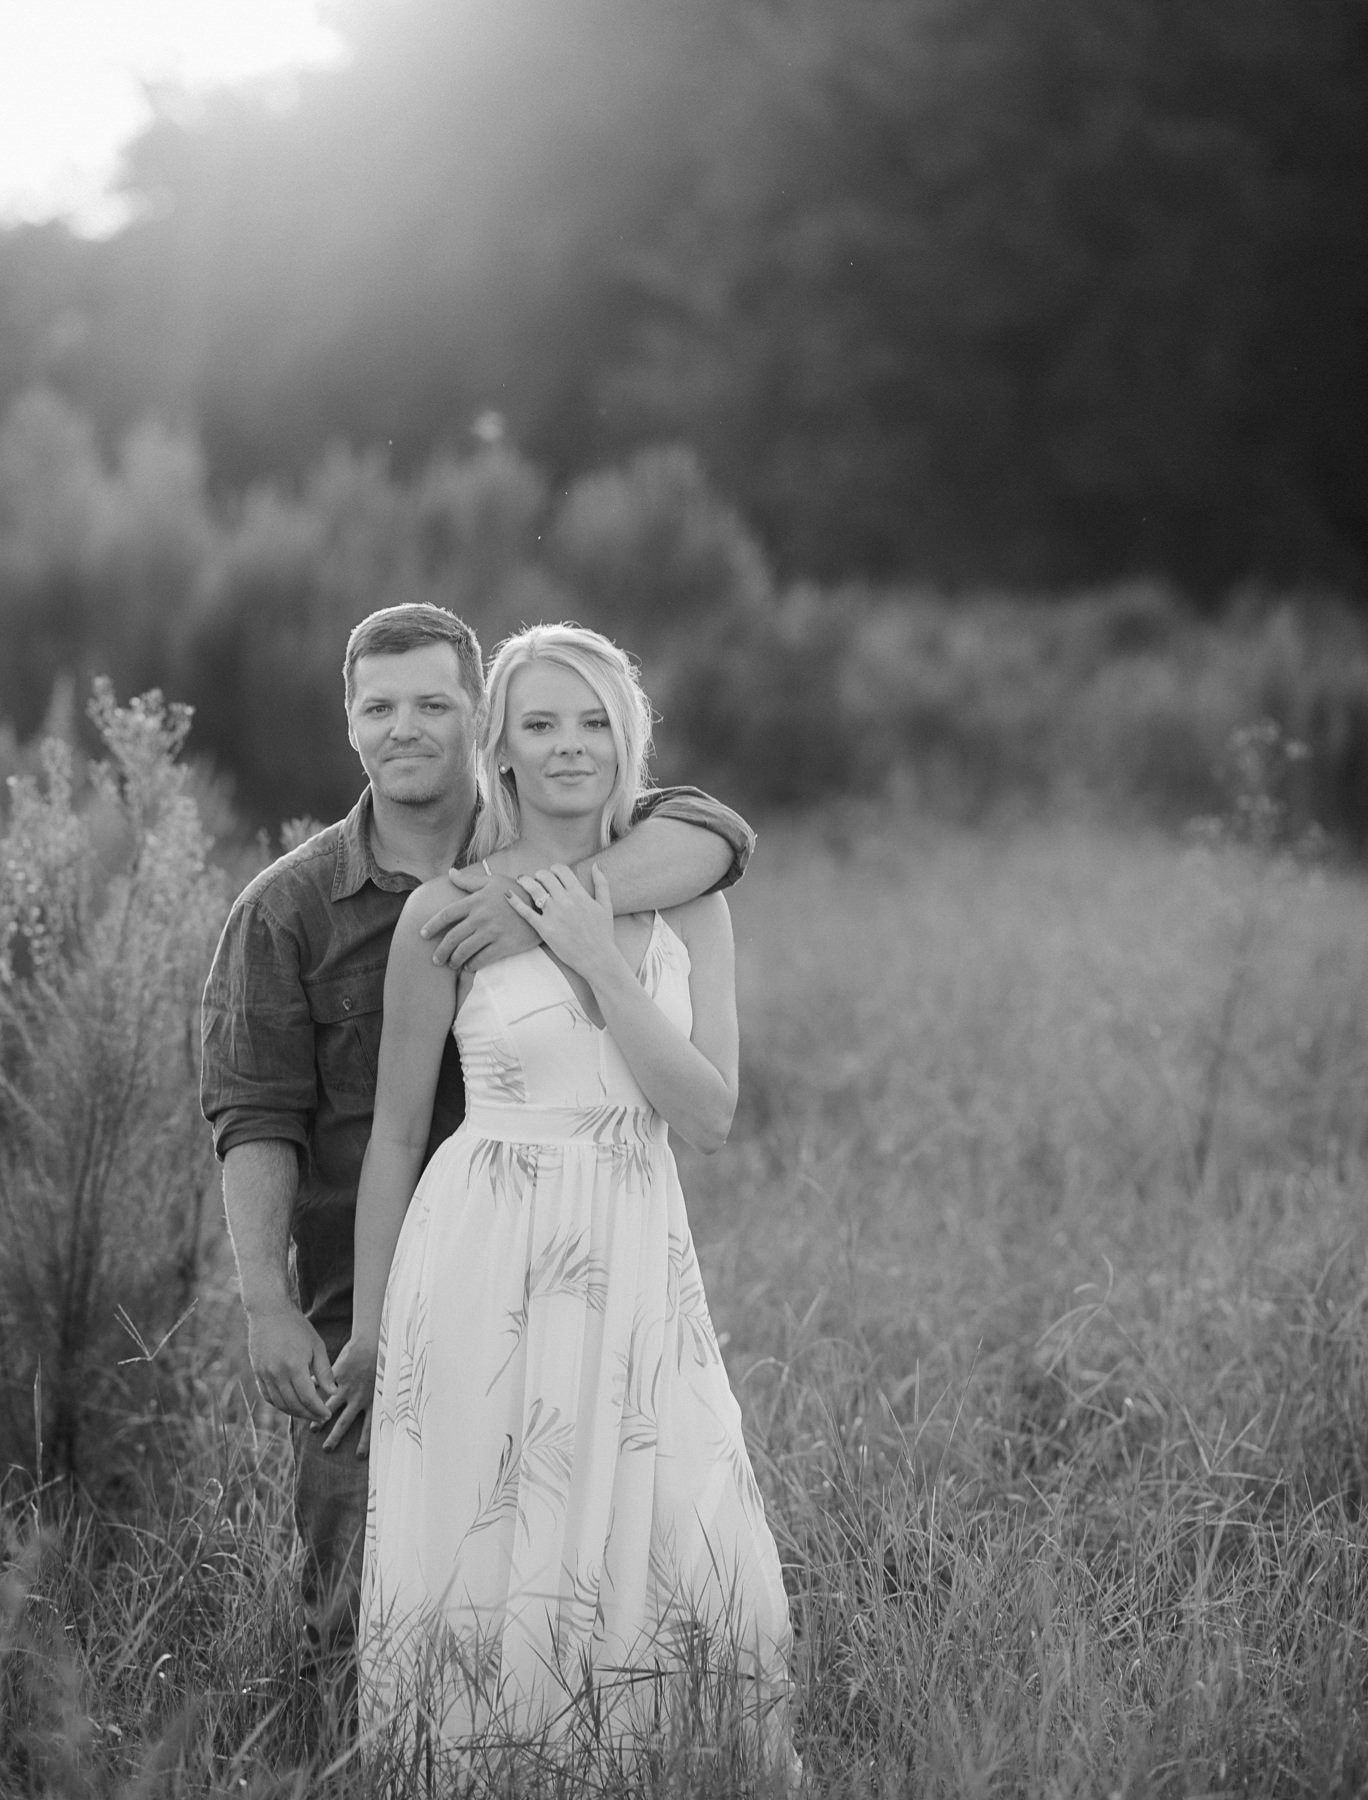 Sunglow Photography - Grassy Field Engagement Session Central Fl